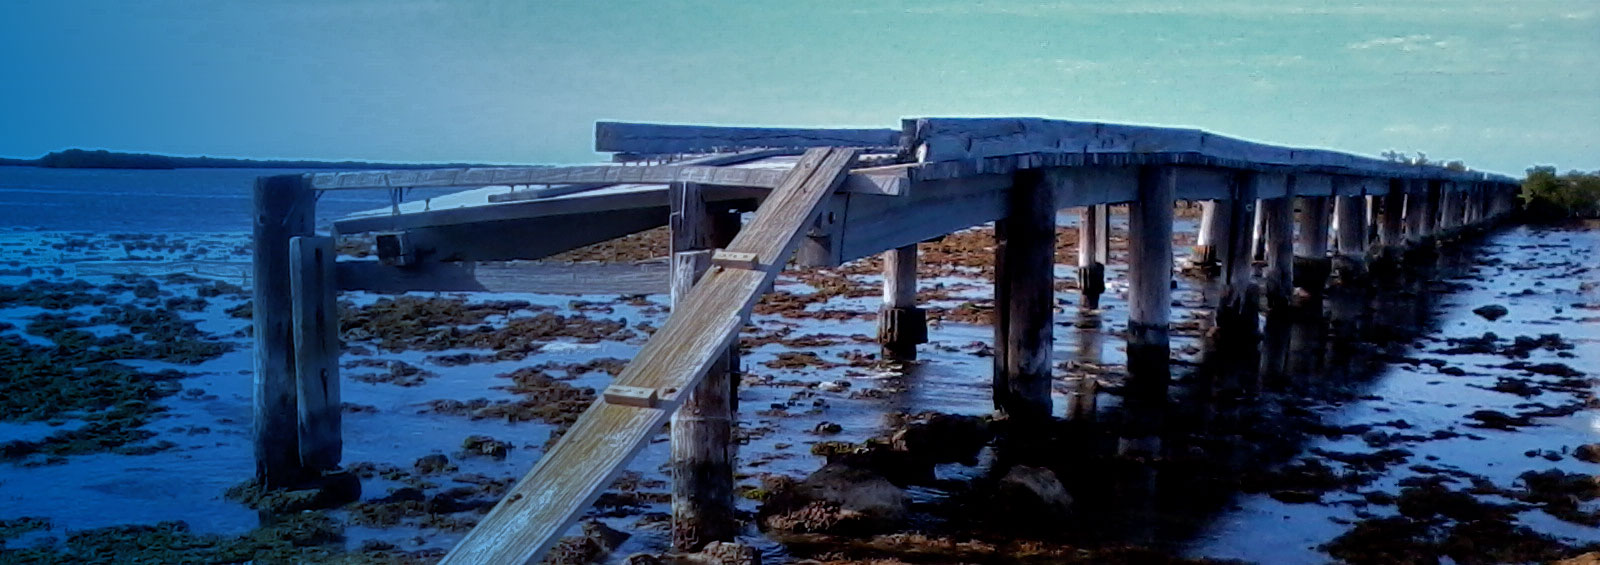 Delapidated bridge, Summerland Key